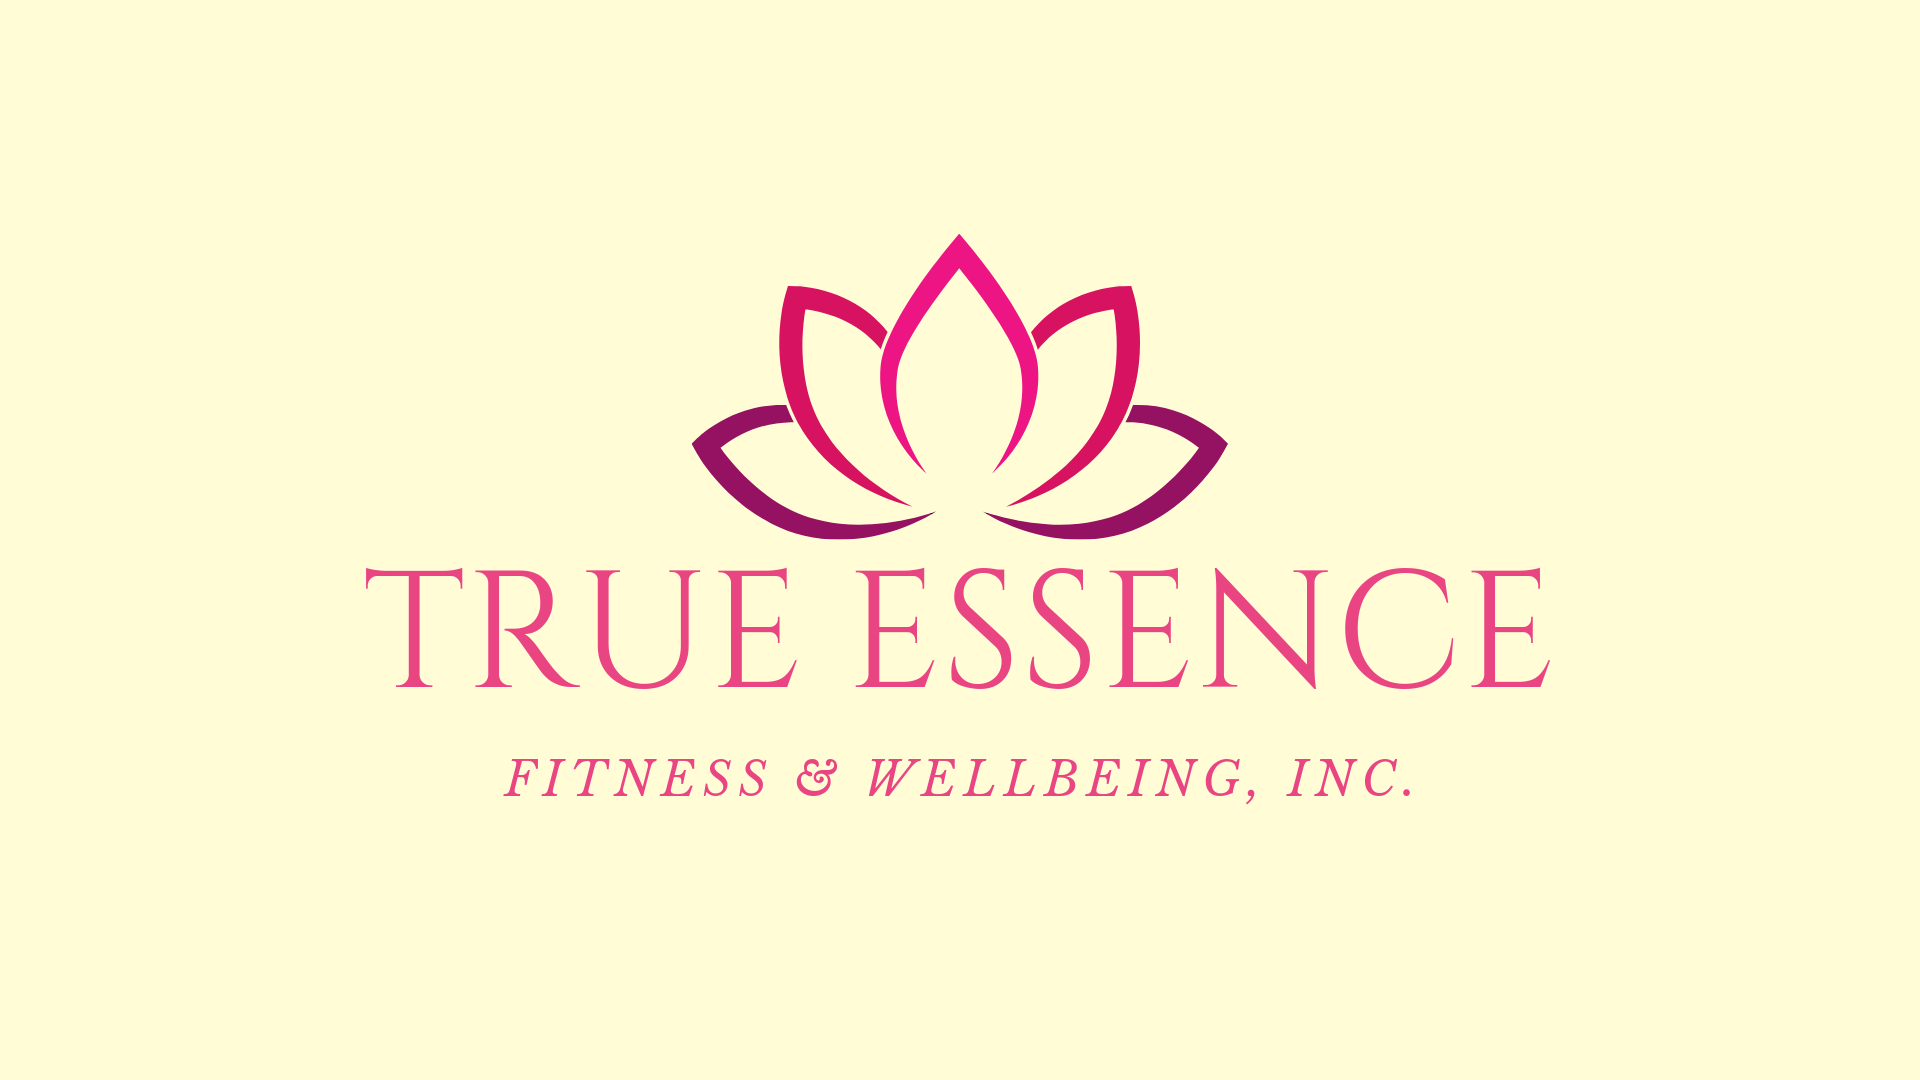 TRUE ESSENCE FITNESS & WELLBEING, INC.